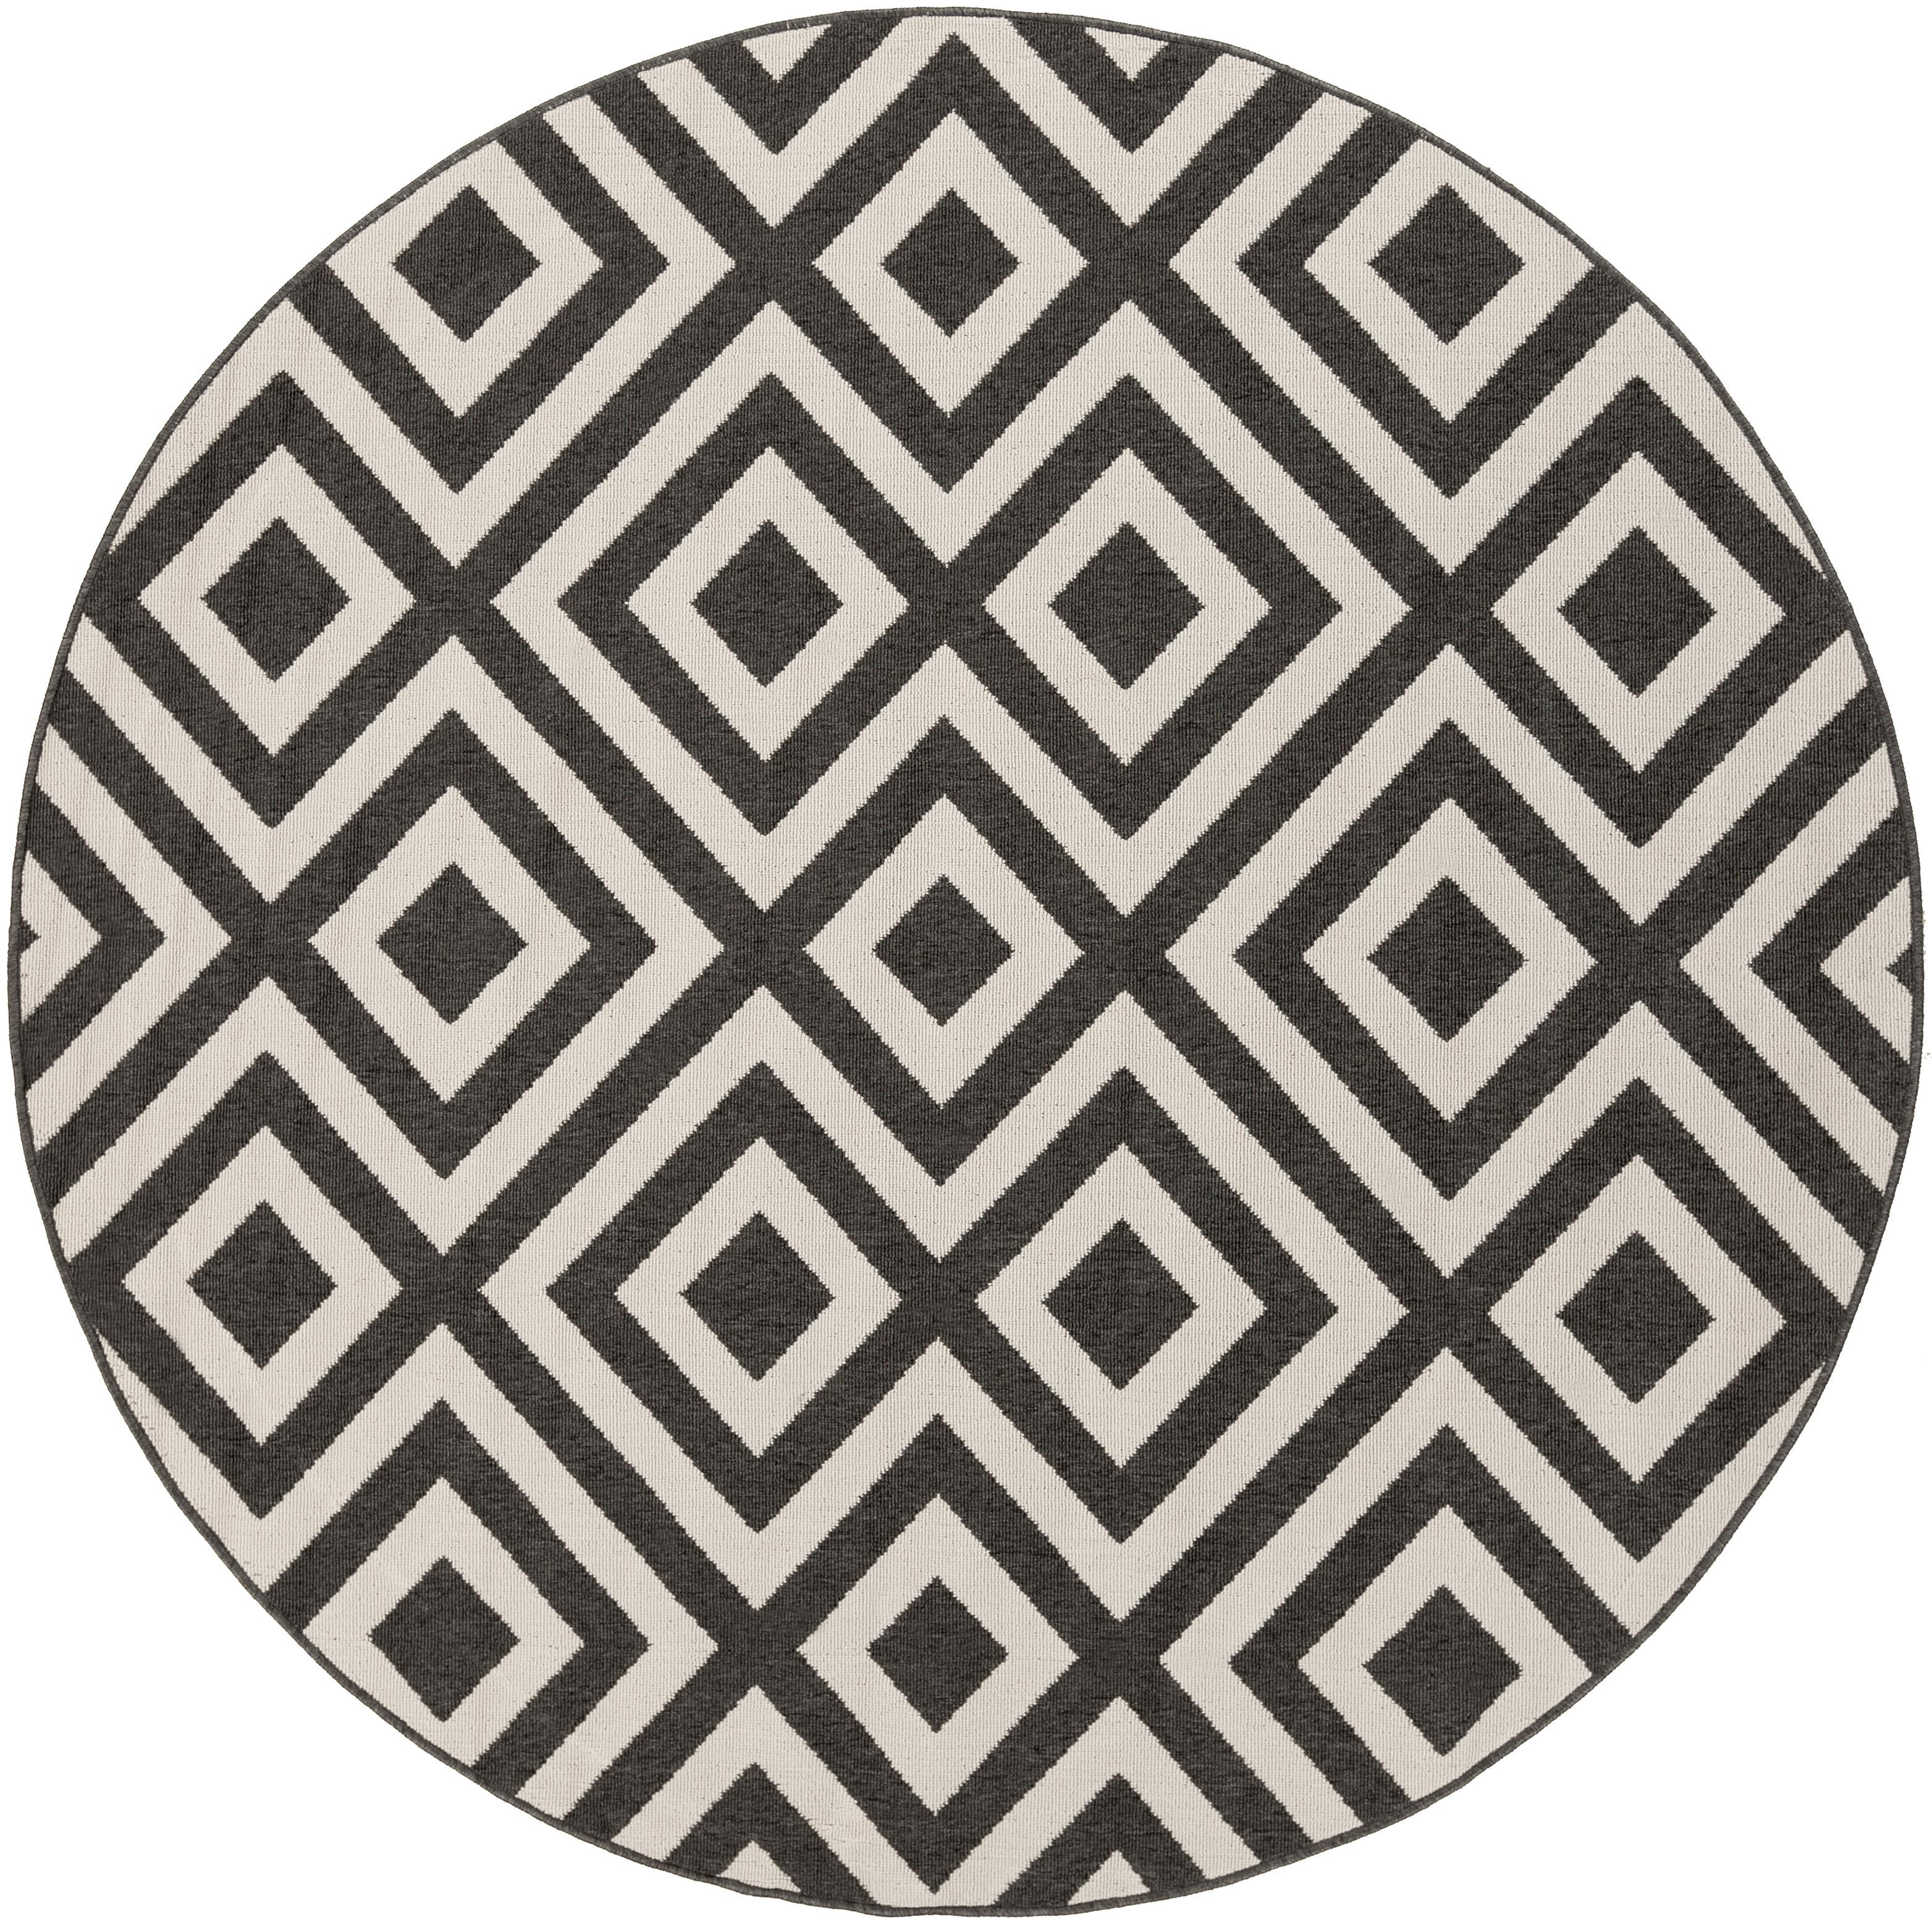 "Alfresco 7'3"" Round by Ruby-Gordon Accents at Ruby Gordon Home"